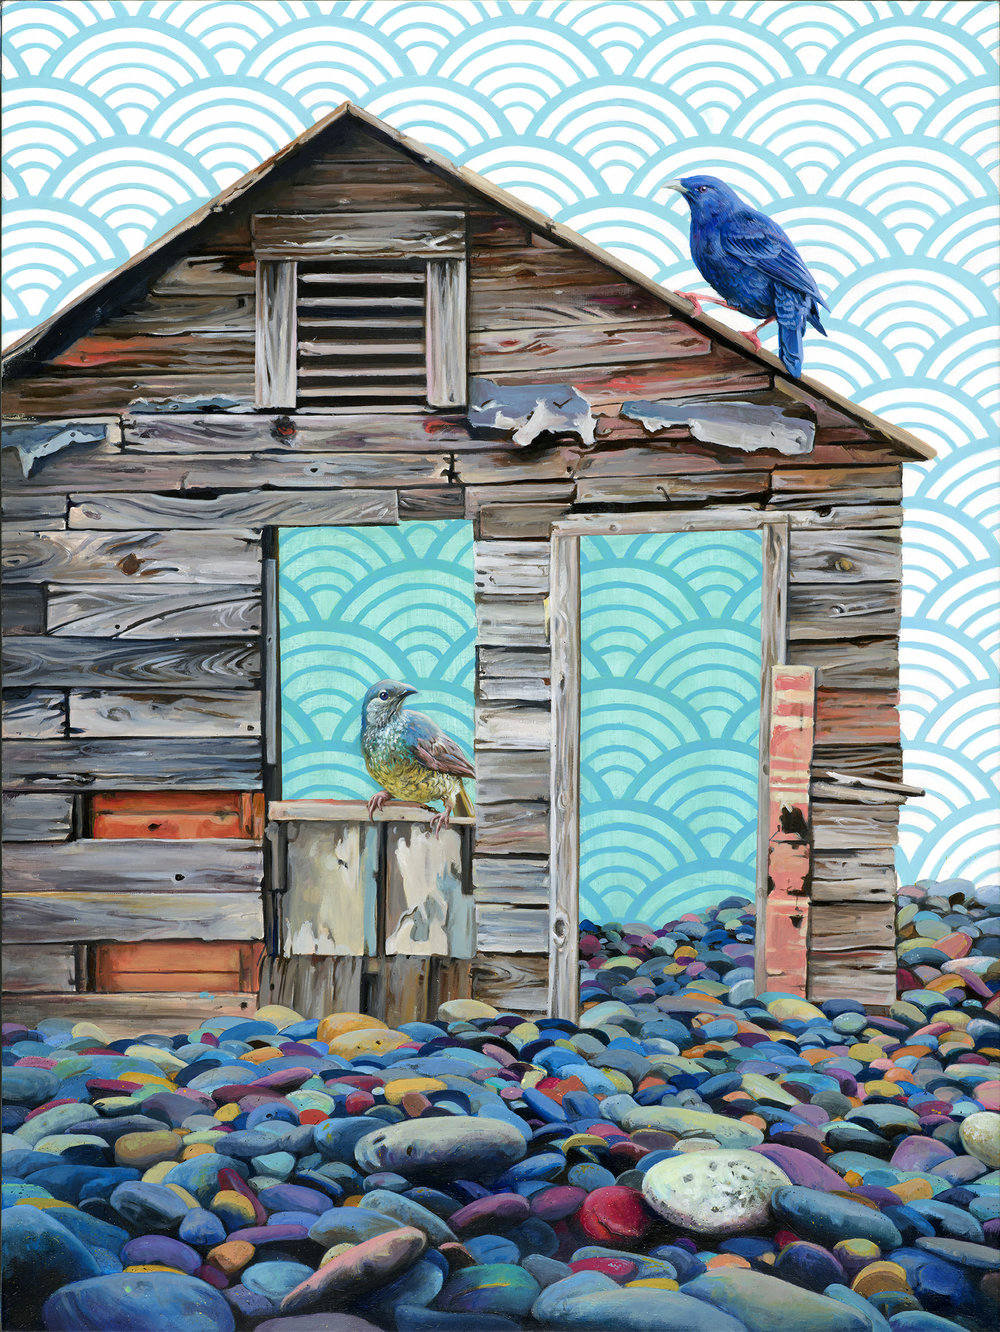 5 Gigi Chen-_A House Can Be A Home_-18x24 inches-acrylic on wood-2017-$1100.jpg